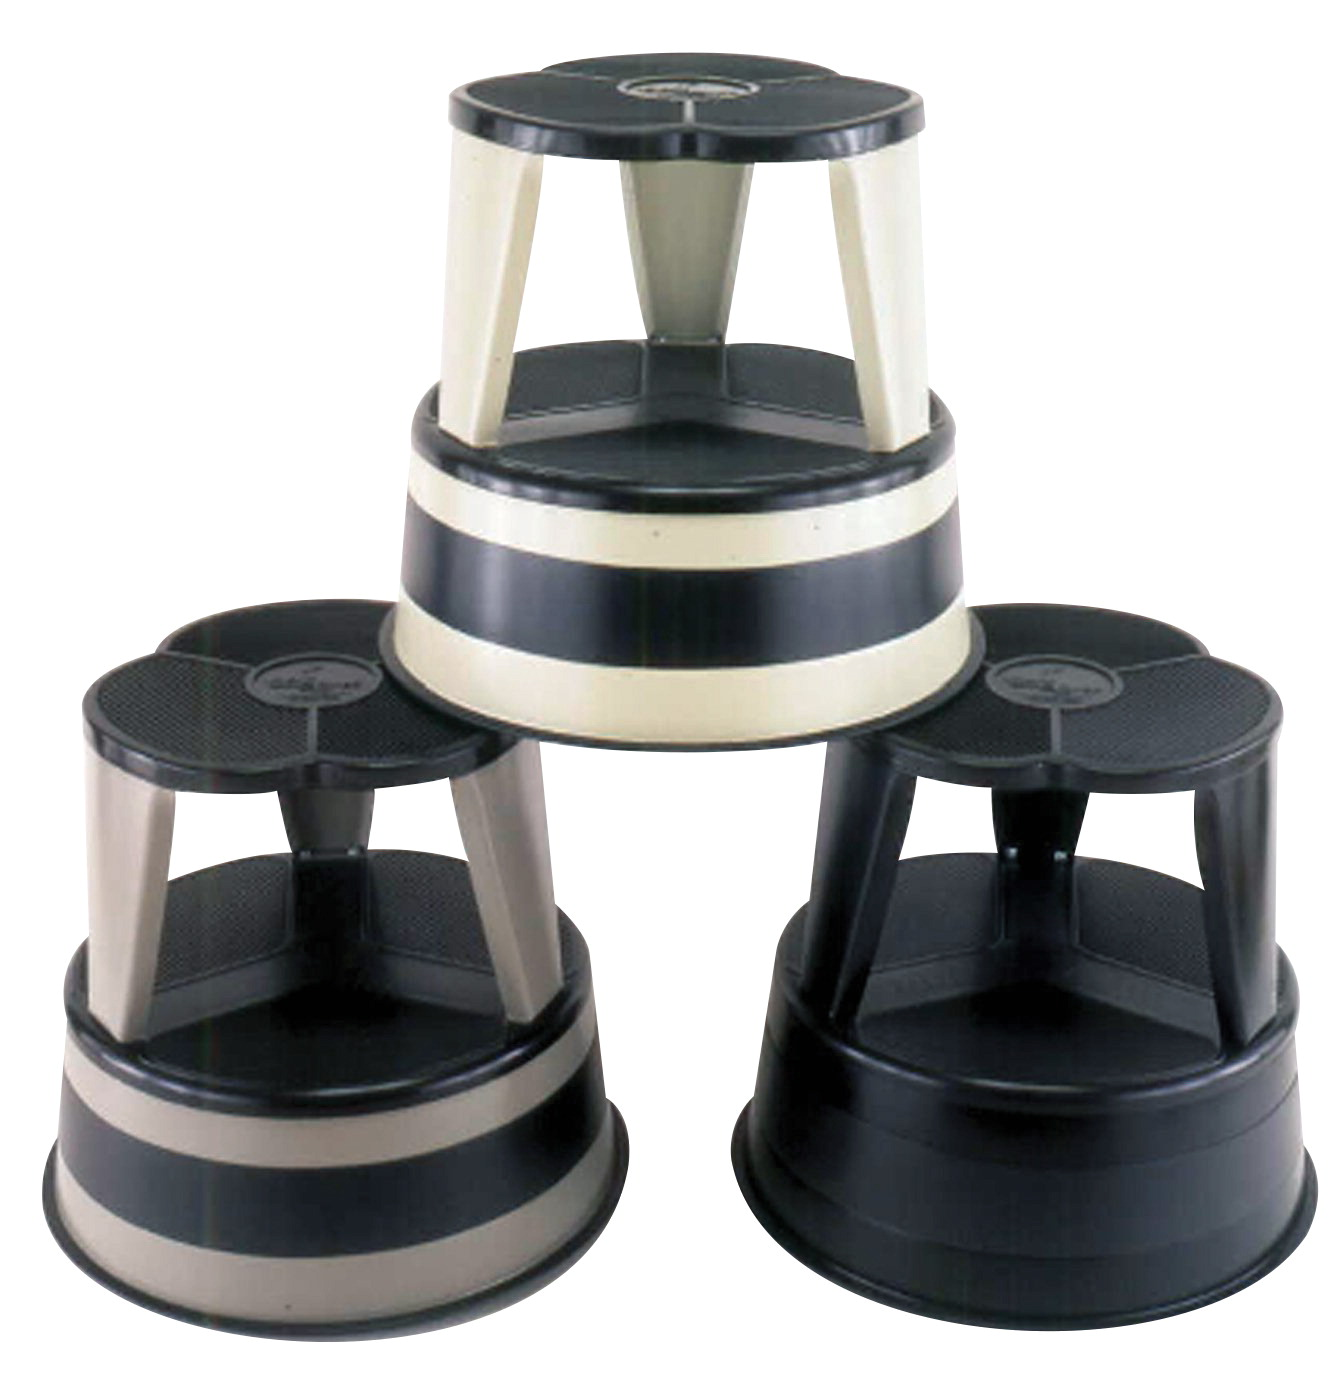 Fine Kik Step Step Stool With Caster 14 In Seat Steel Black Lamtechconsult Wood Chair Design Ideas Lamtechconsultcom